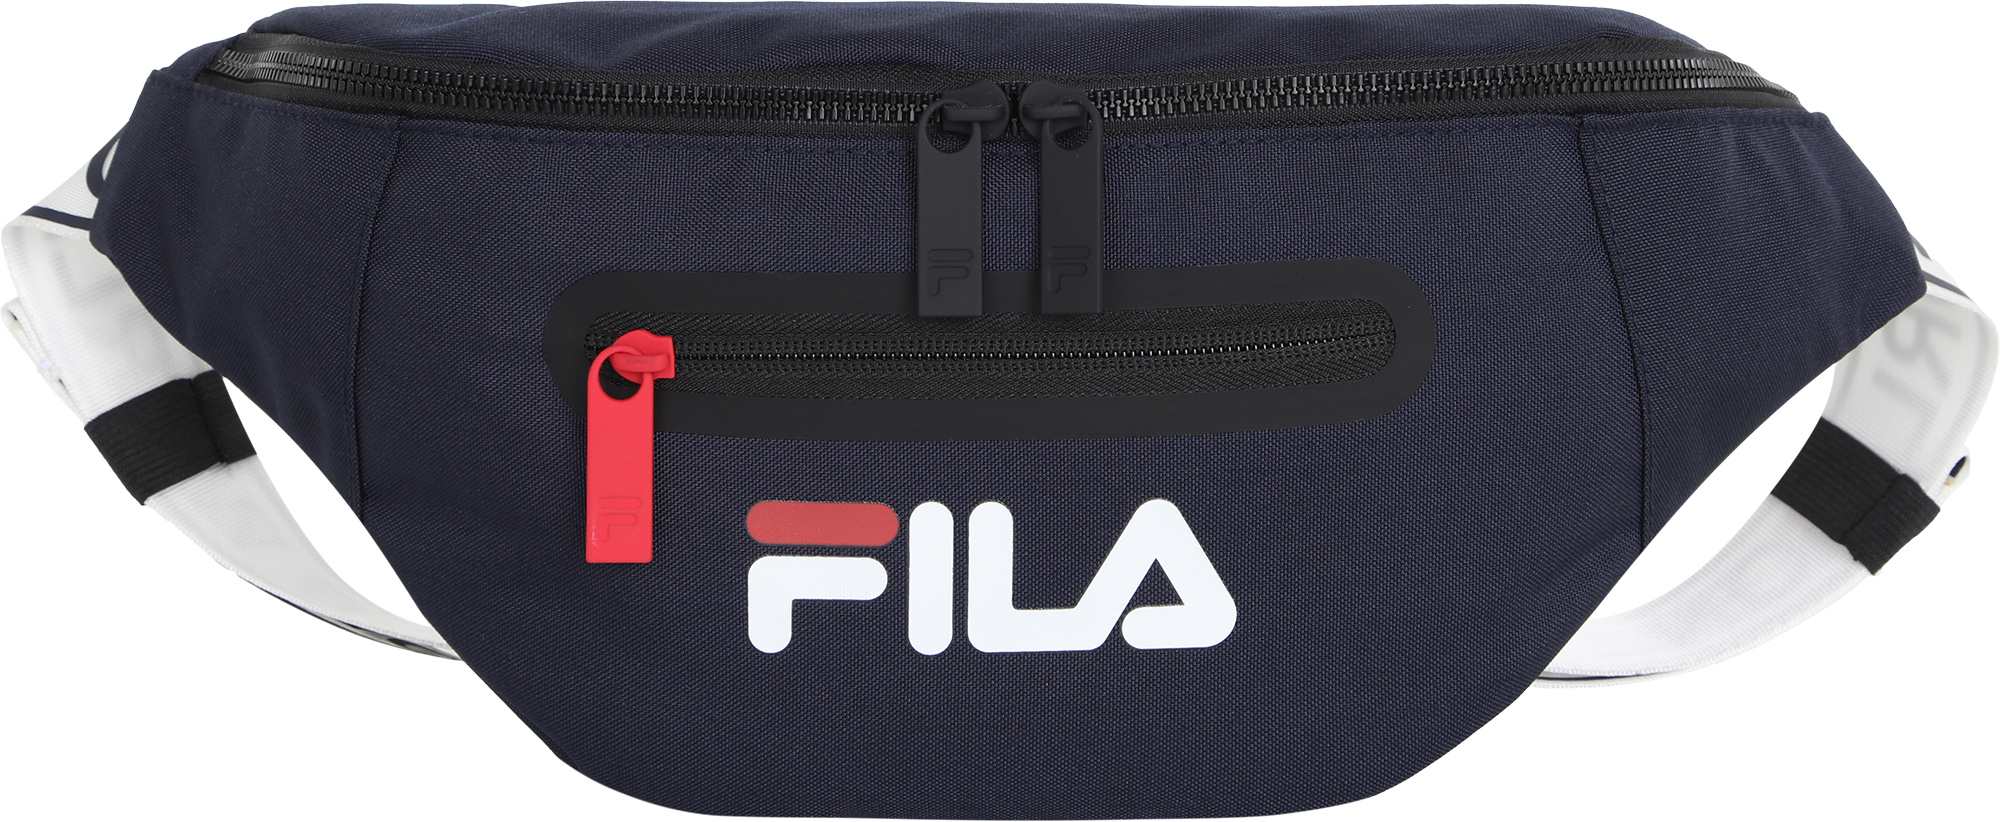 сумка спортивная fila coated bag s19aflacu01 m1 синий FILA Сумка на пояс FILA